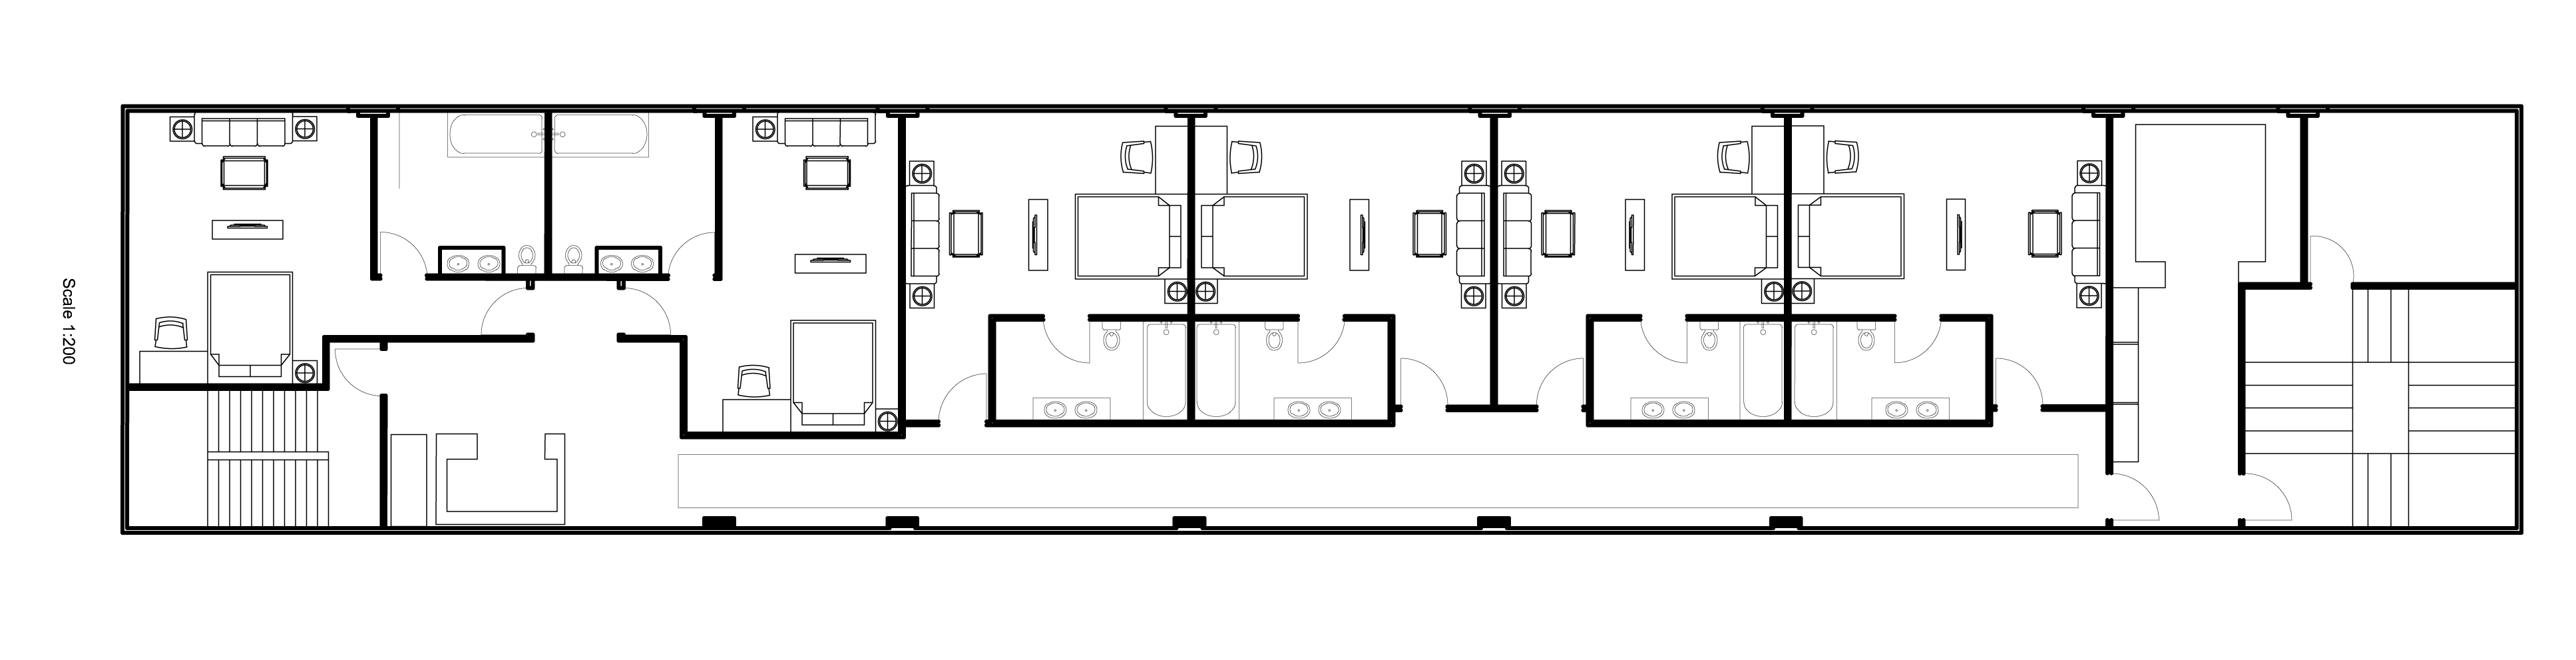 Hotel Room Floor Plan Dwg